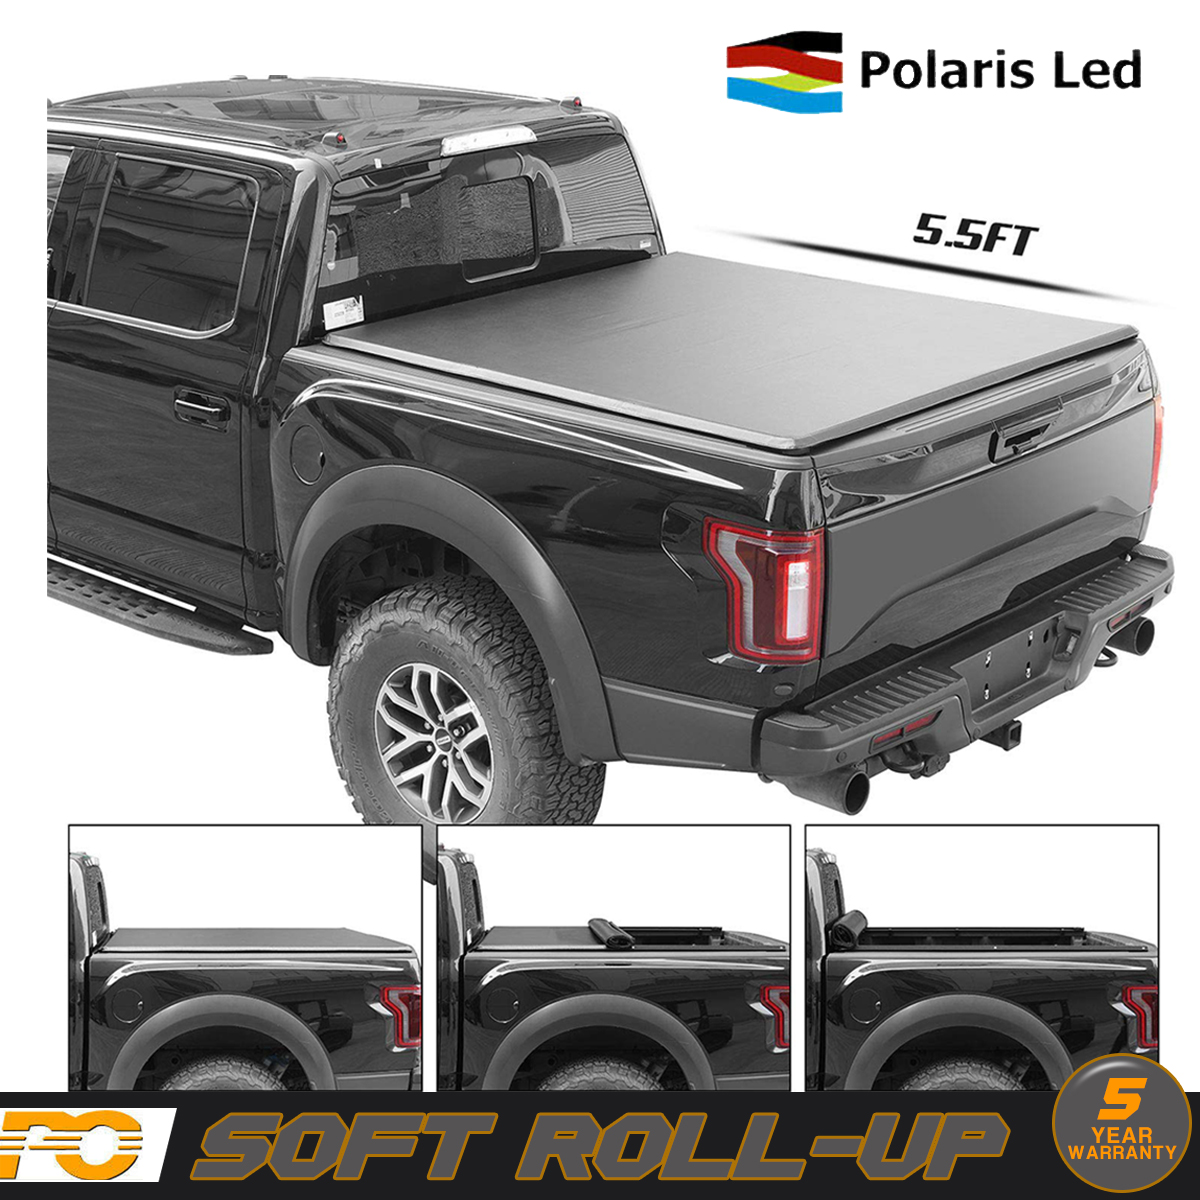 5 5ft Truck Bed Roll Up Soft Tonneau Cover For 2014 2018 Ford F 150 Telesto Gr